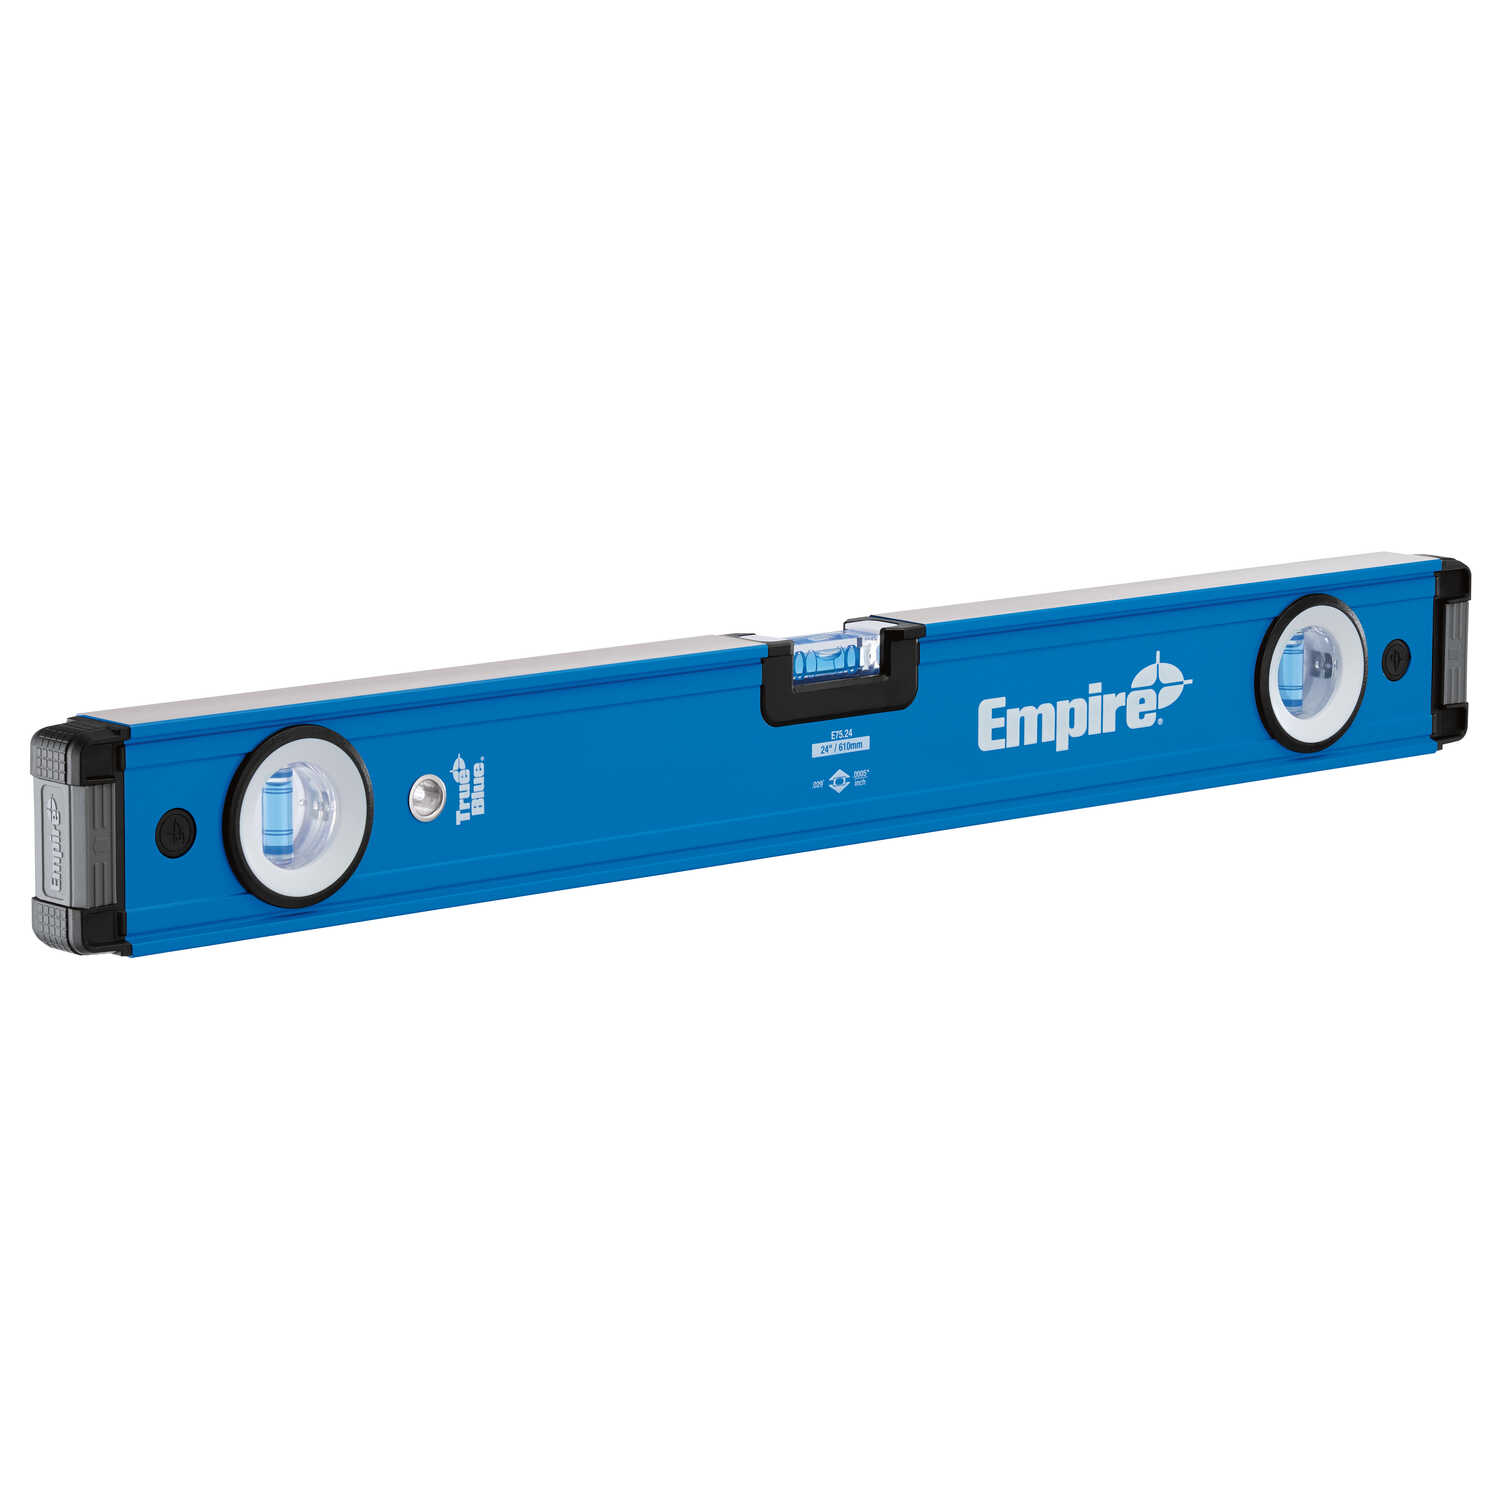 Empire  True Blue  24 in. Aluminum  Box  Level  3 vial